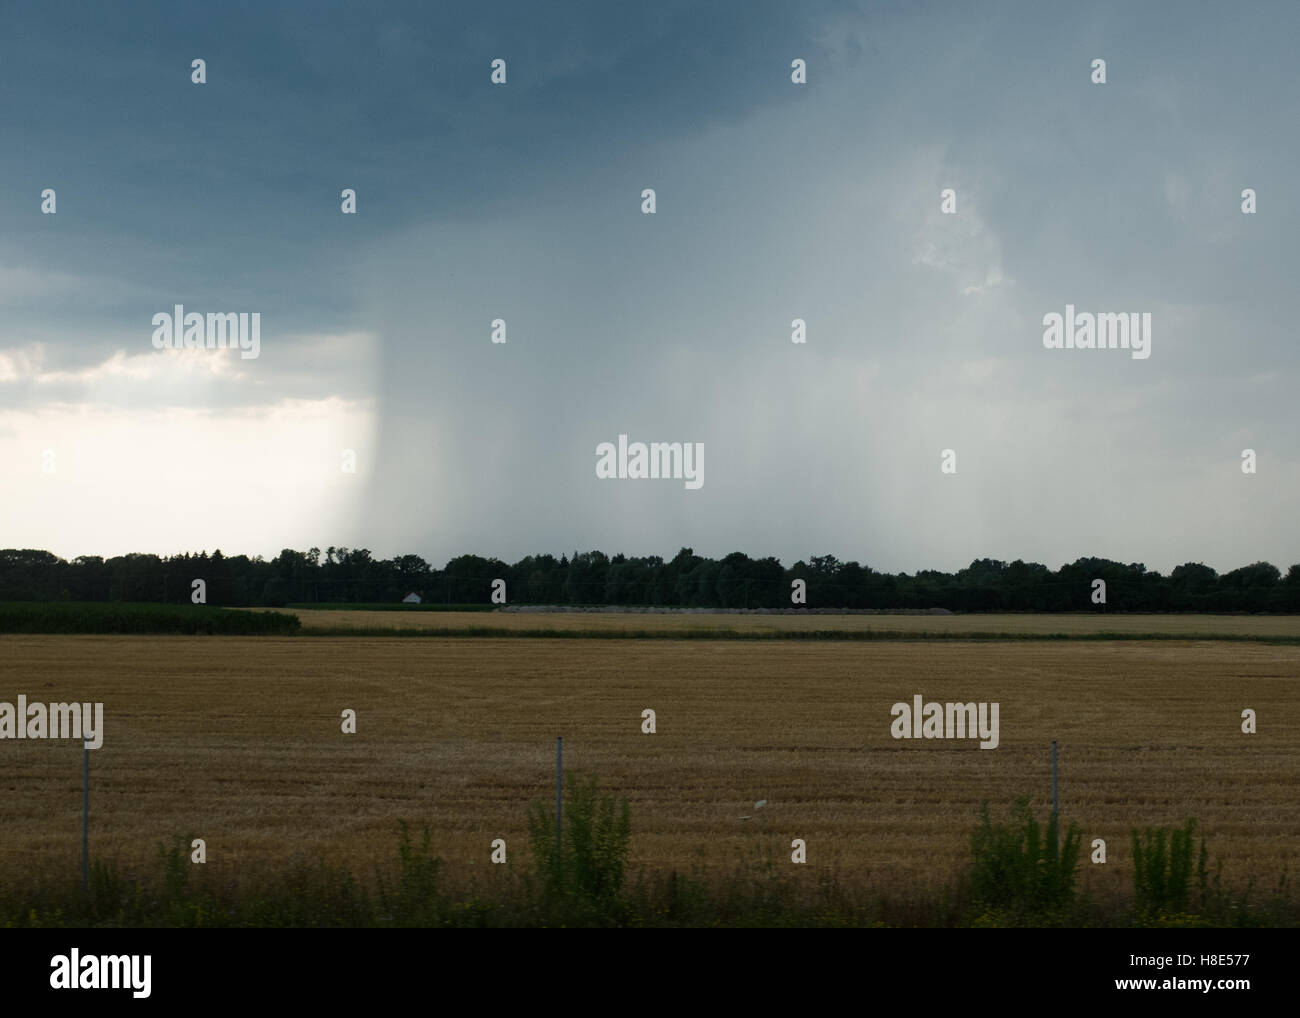 Distant rainstorm in the countryside - Stock Image